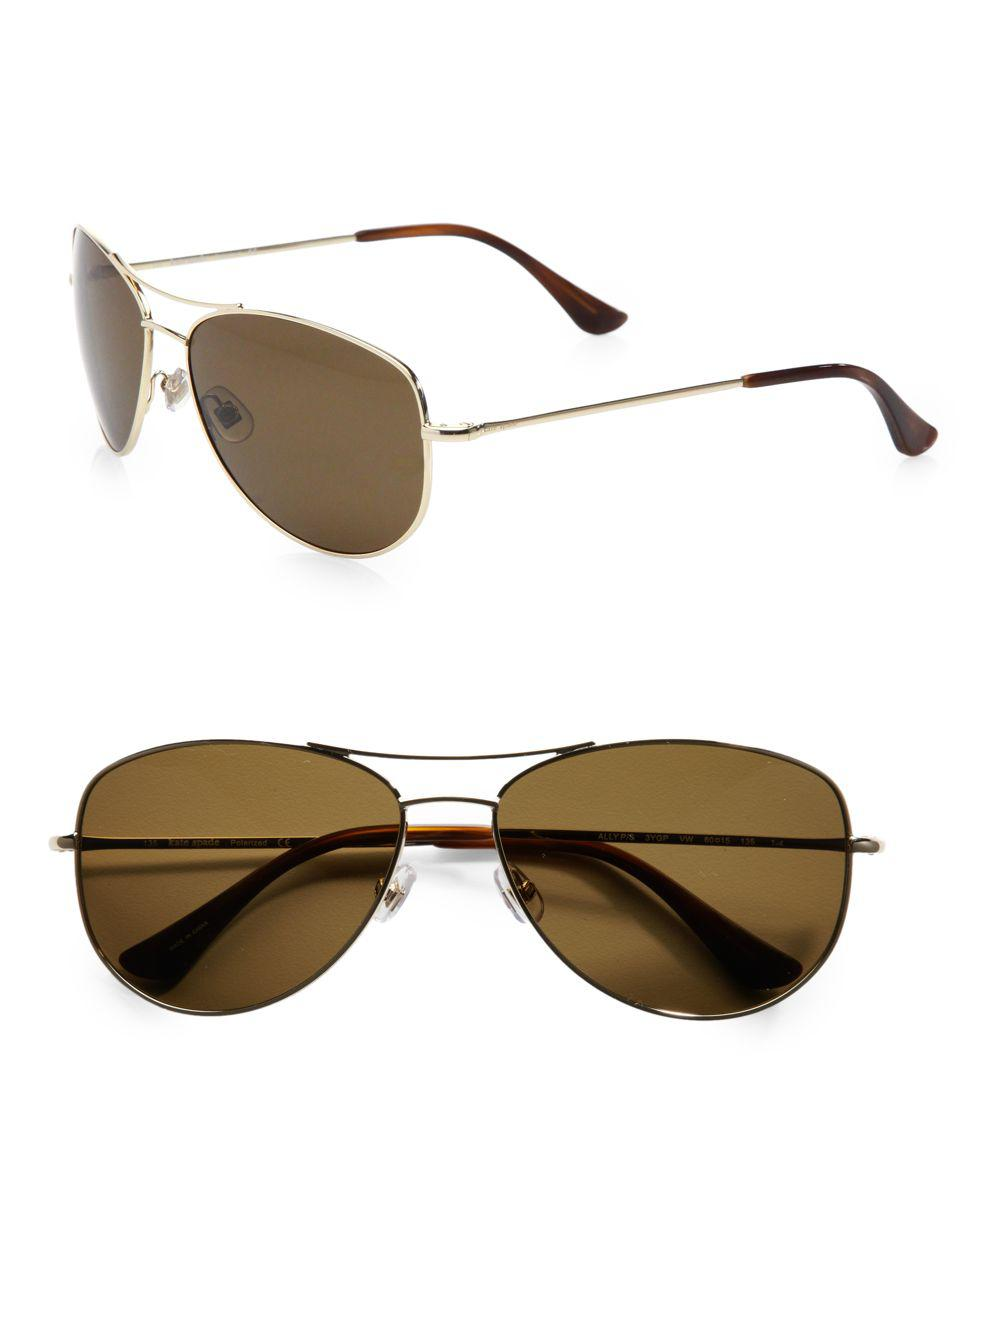 53b43d49e954 Lyst - Kate Spade Ally Polarized Metal Aviator Sunglasses in Metallic